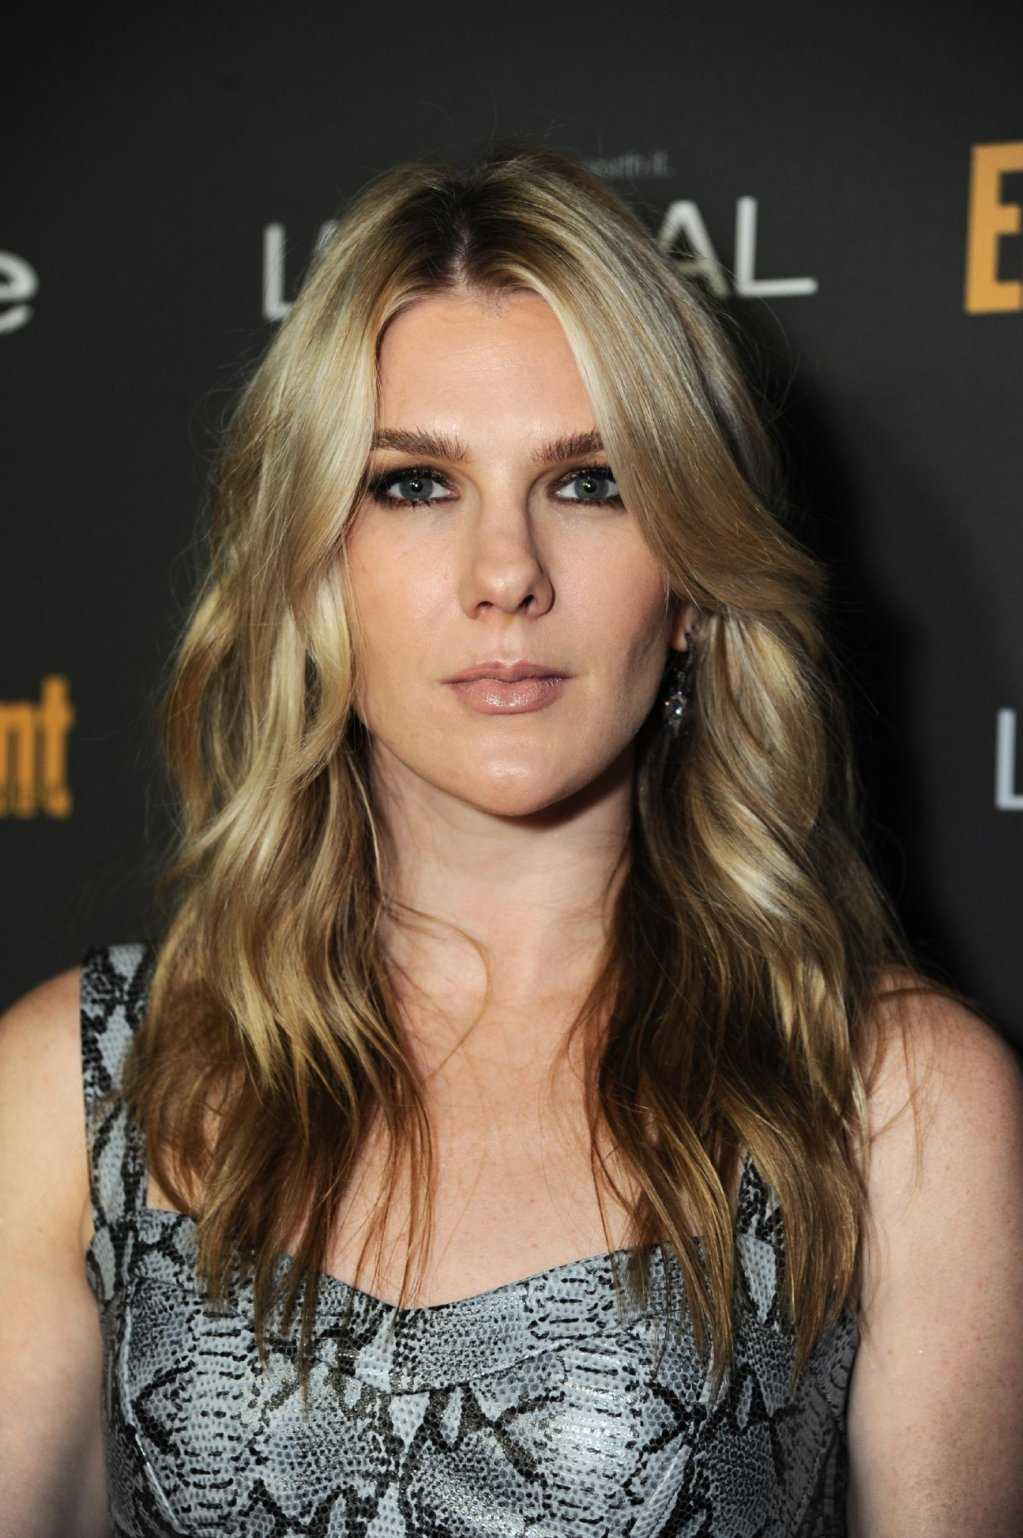 Lily Rabe's Killer Character Revealed For AHS: Hotel | lily rabe